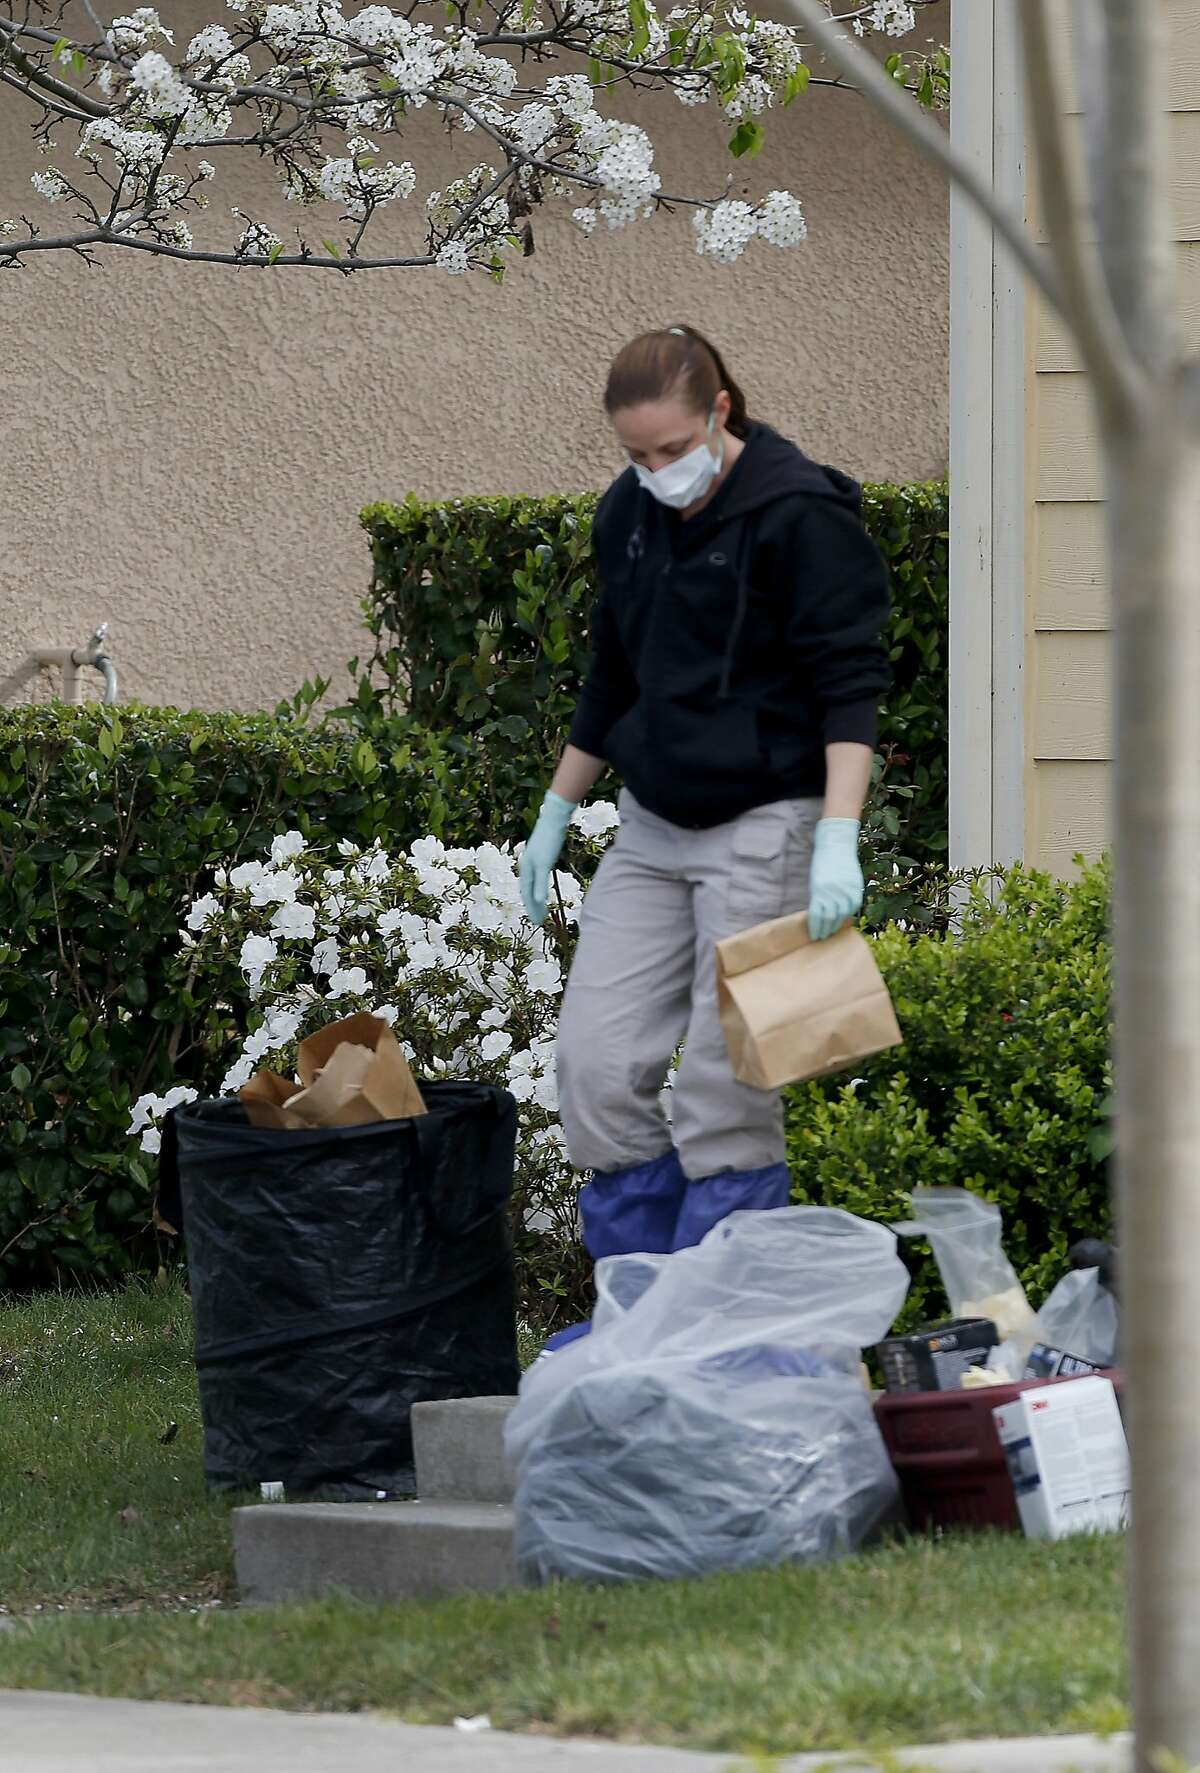 Some items were left on the front lawn of the home on Kirkland Avenue where investigators worked on Mare Island Tuesday March 24, 2015. The Vallejo, Calif. police department says Denise Huskins, a Kaiser physical therapist, is the apparent victim of a kidnapping for ransom.